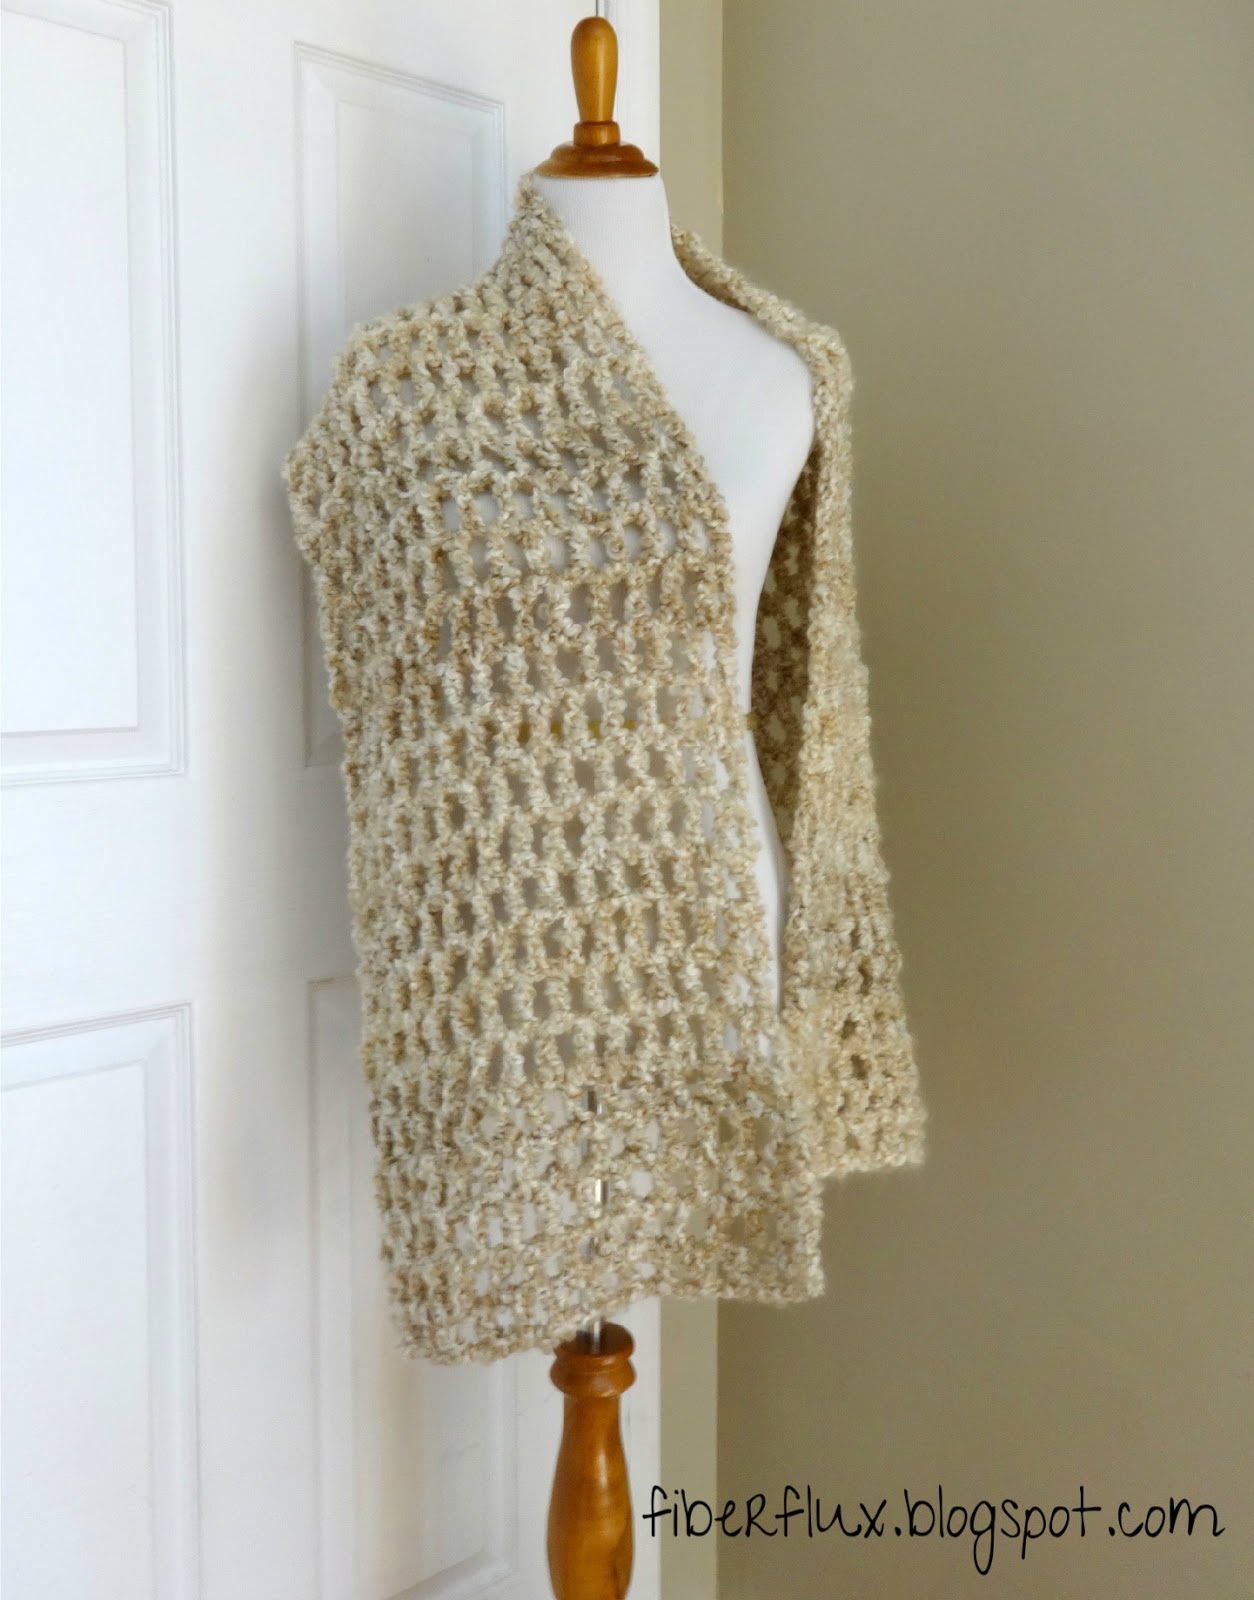 Quick Easy Crochet Shawl Patterns Free : Fiber Flux: Free Crochet Pattern...Vanilla Chai Shawl!